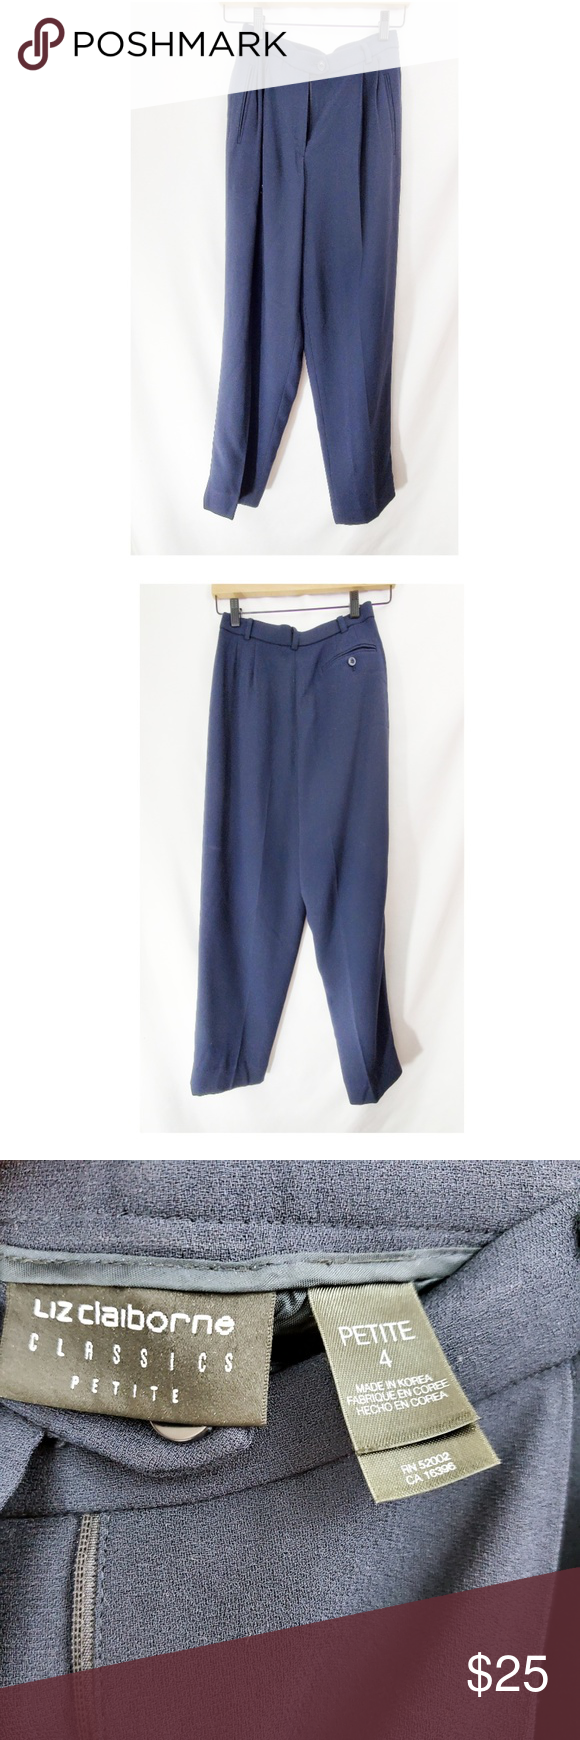 🌼 VTG 90s LIZ CLAIBORNE Navy Blue Tapered Pants Authentic vintage 90s Liz Claiborne high waisted tapered pants. Cute with a silk cami. Size 4 Petite.  13